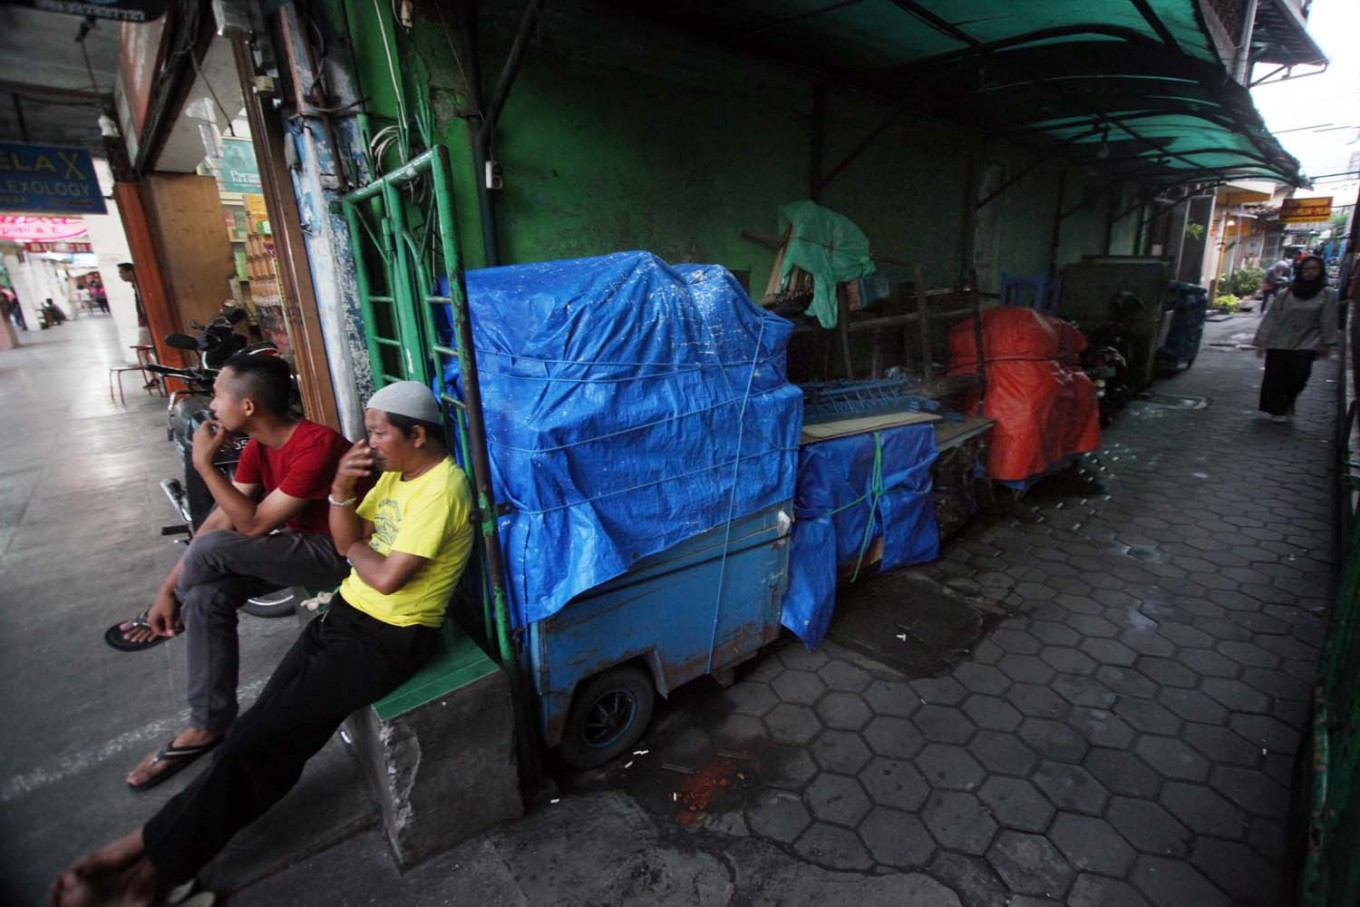 Carts owned by street vendors are stored in an alley on Malioboro. JP/Boy T. Harjanto